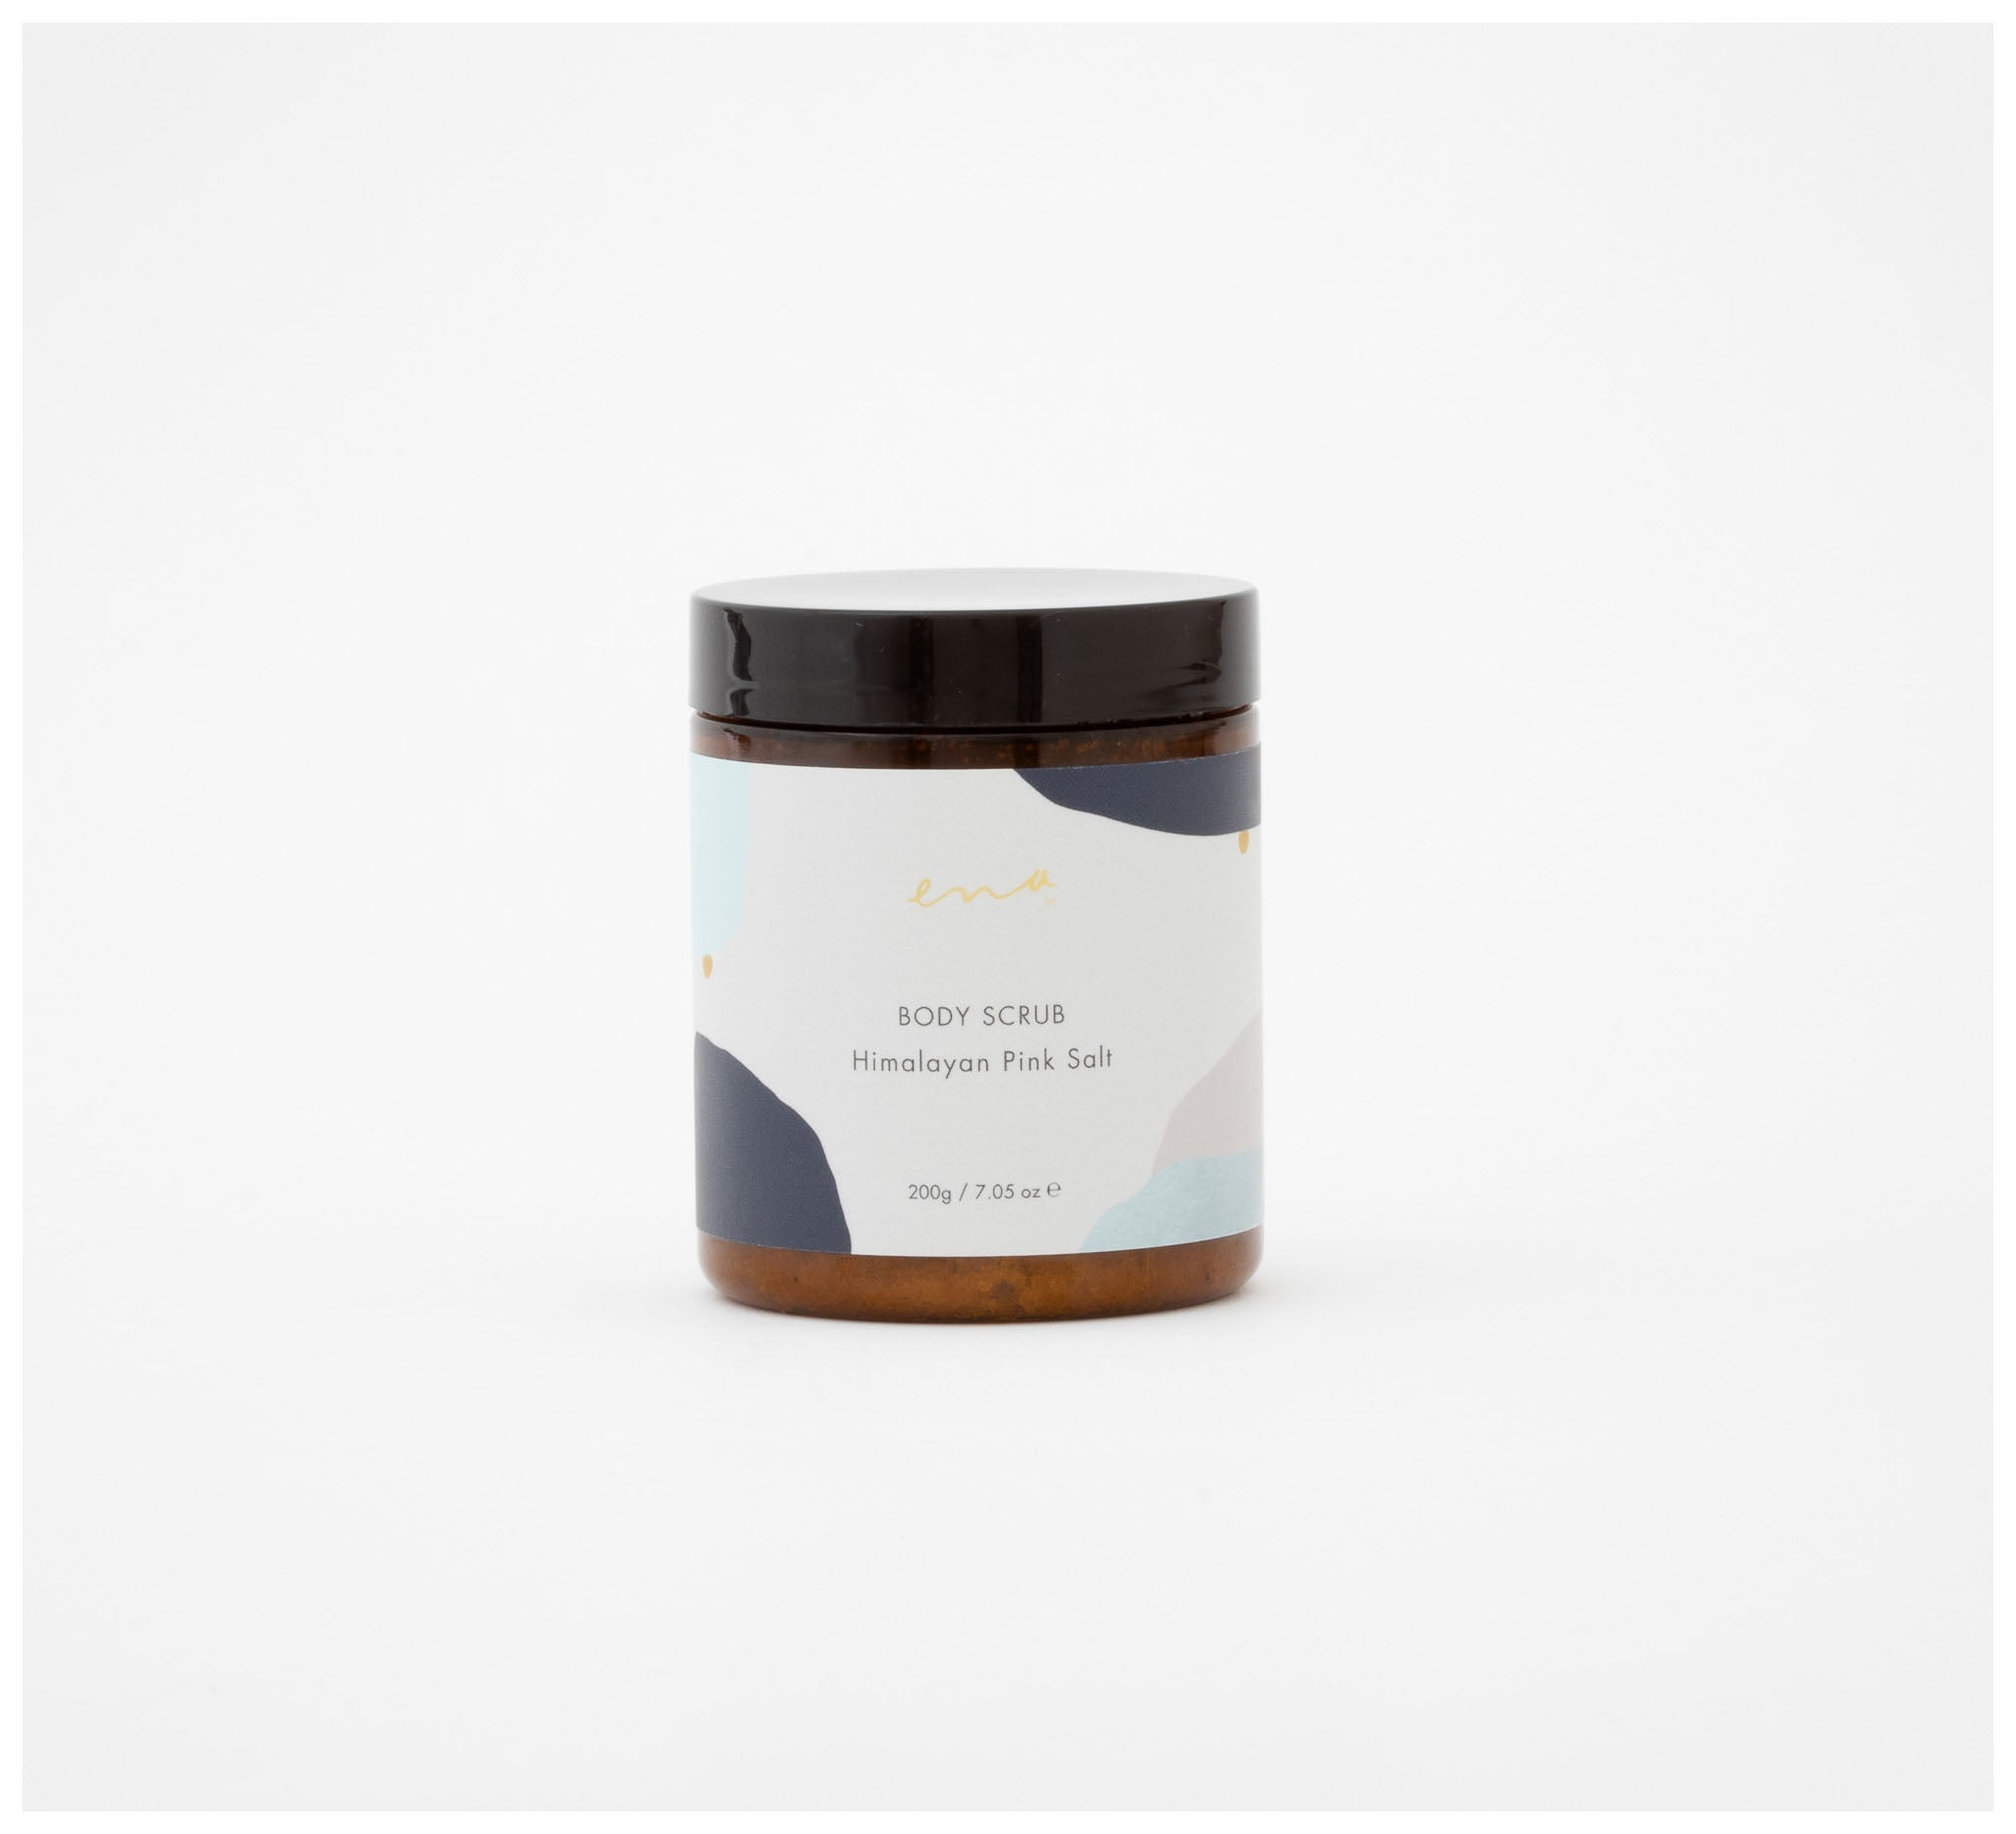 Ena Products - Body Scrub - Himalayan Pink Salt, Pink Grapefruit, Lemon Myrtle & Eucalyptus 200gm